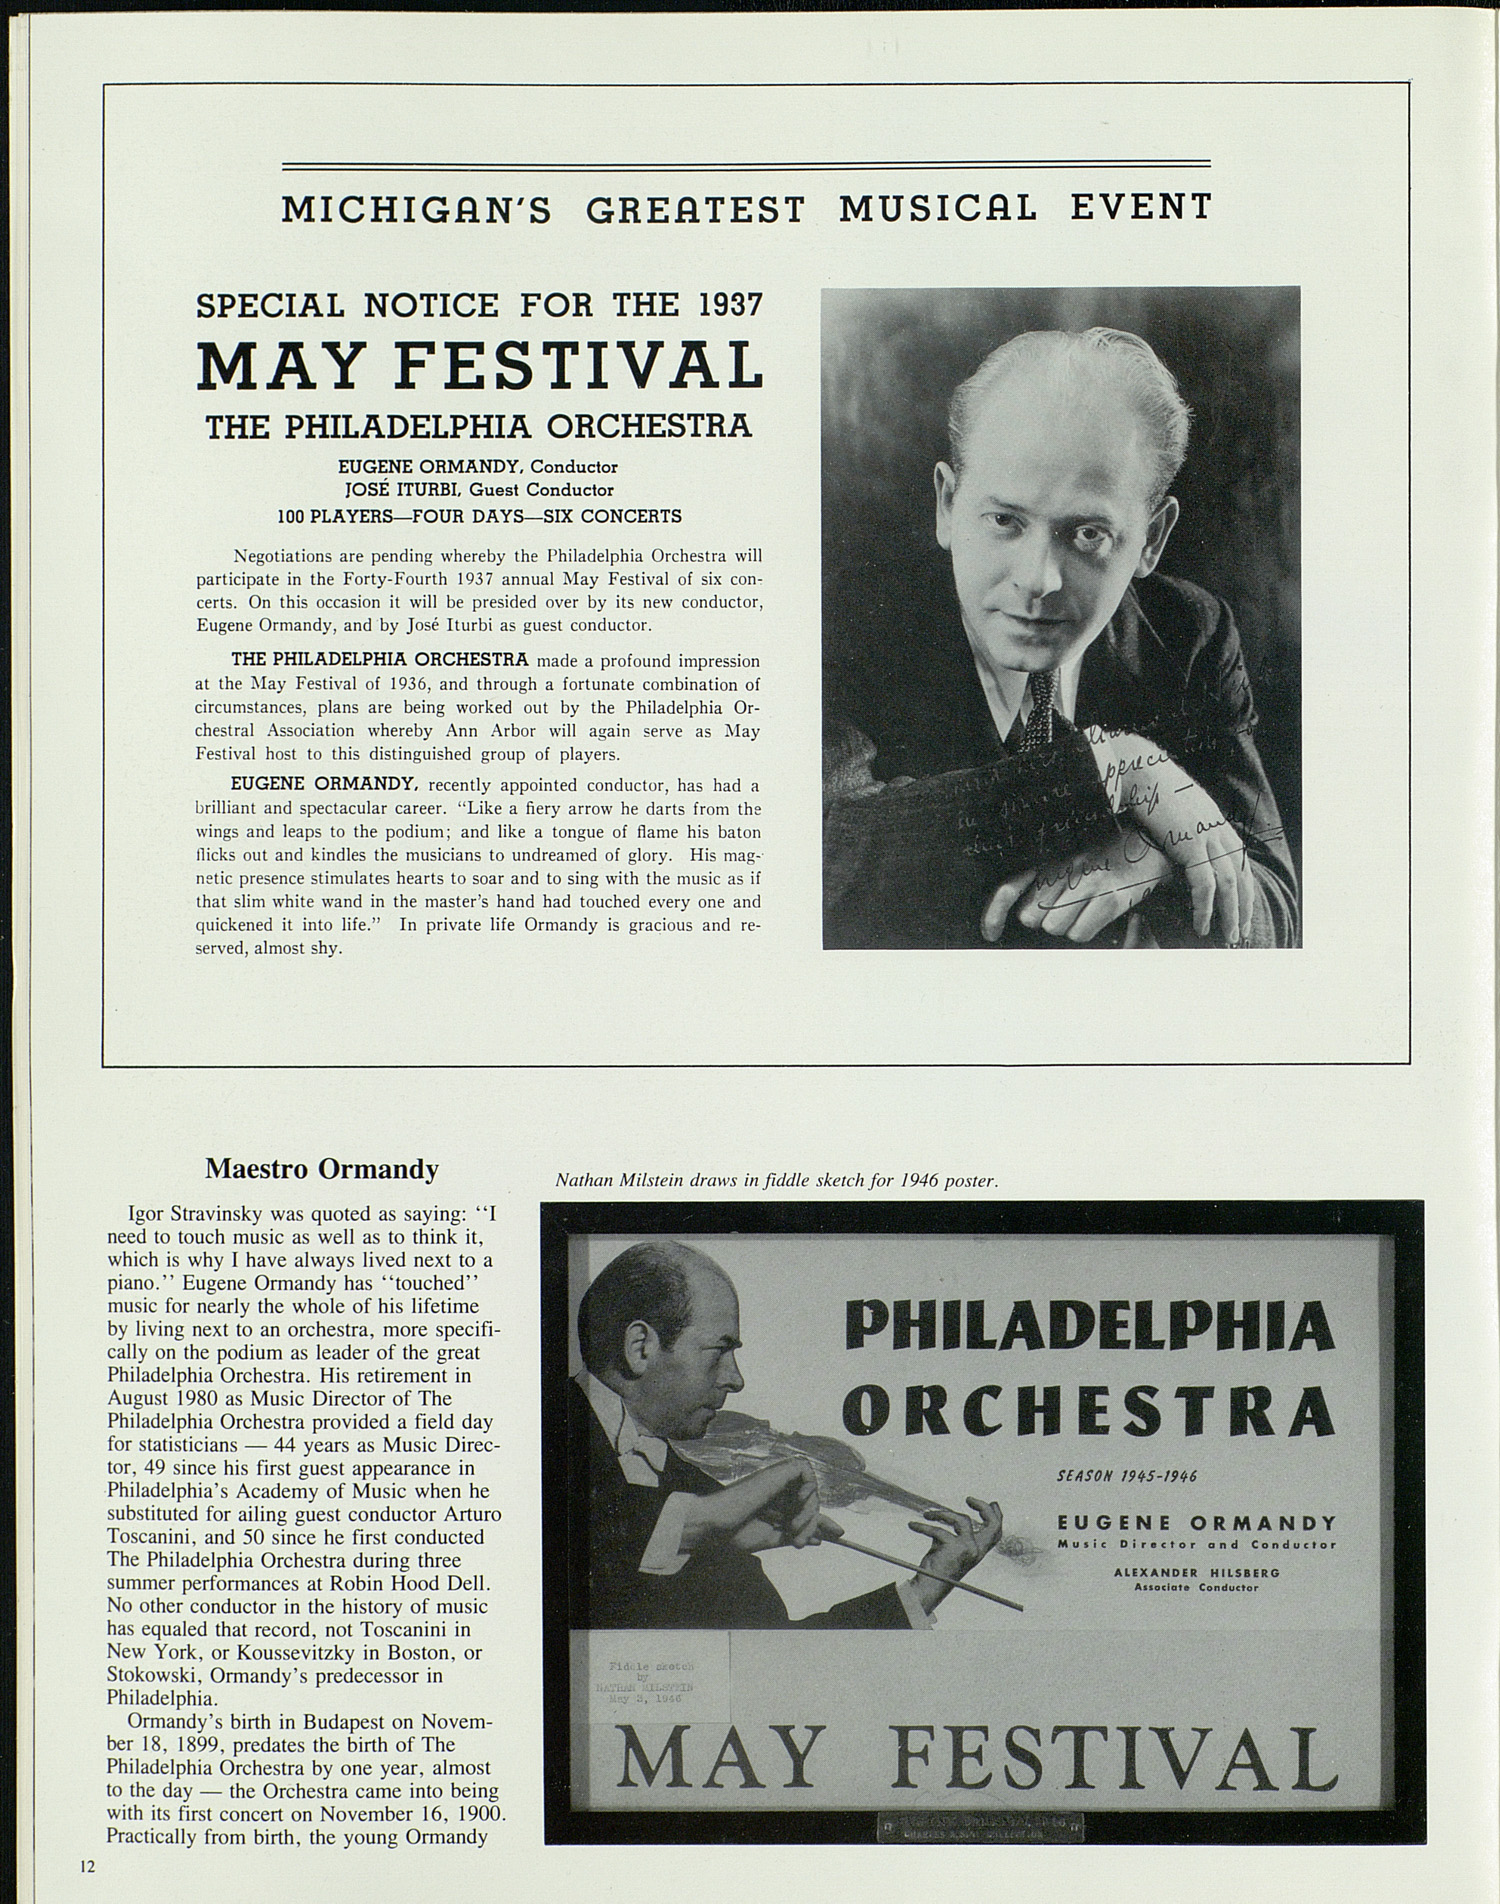 UMS Concert Program, April 25, 26, 27, 28: Ann Arbor May Festival -- Philadelphia Orchestra image